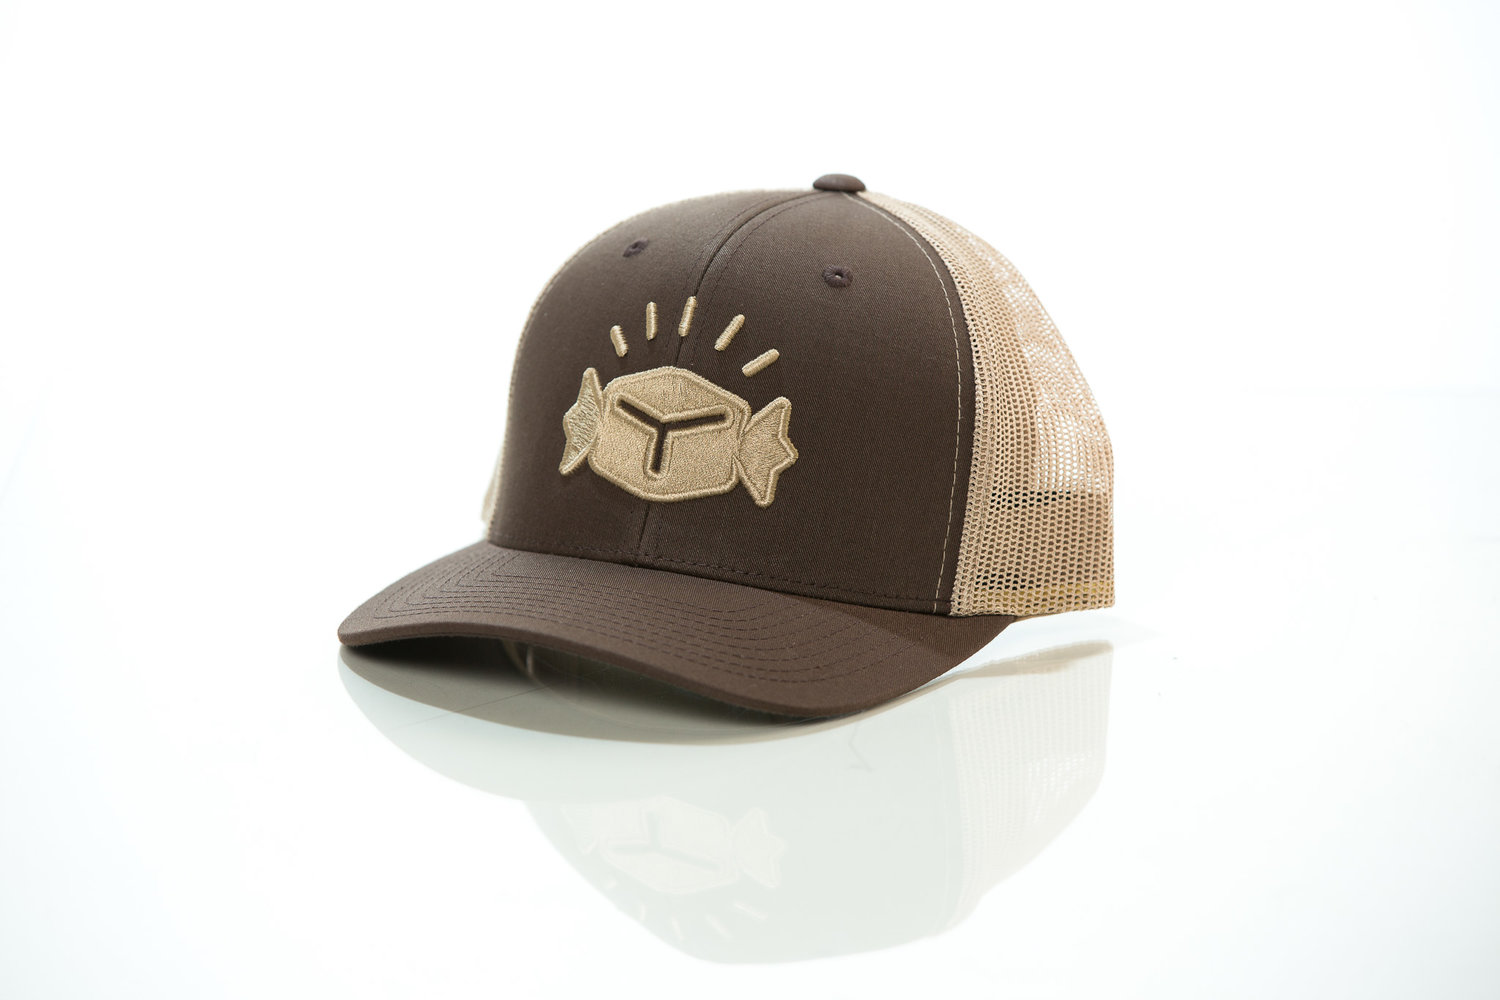 SOLD OUT - Caramel Bling Trucker 2-Tone Hat a2e186bf681